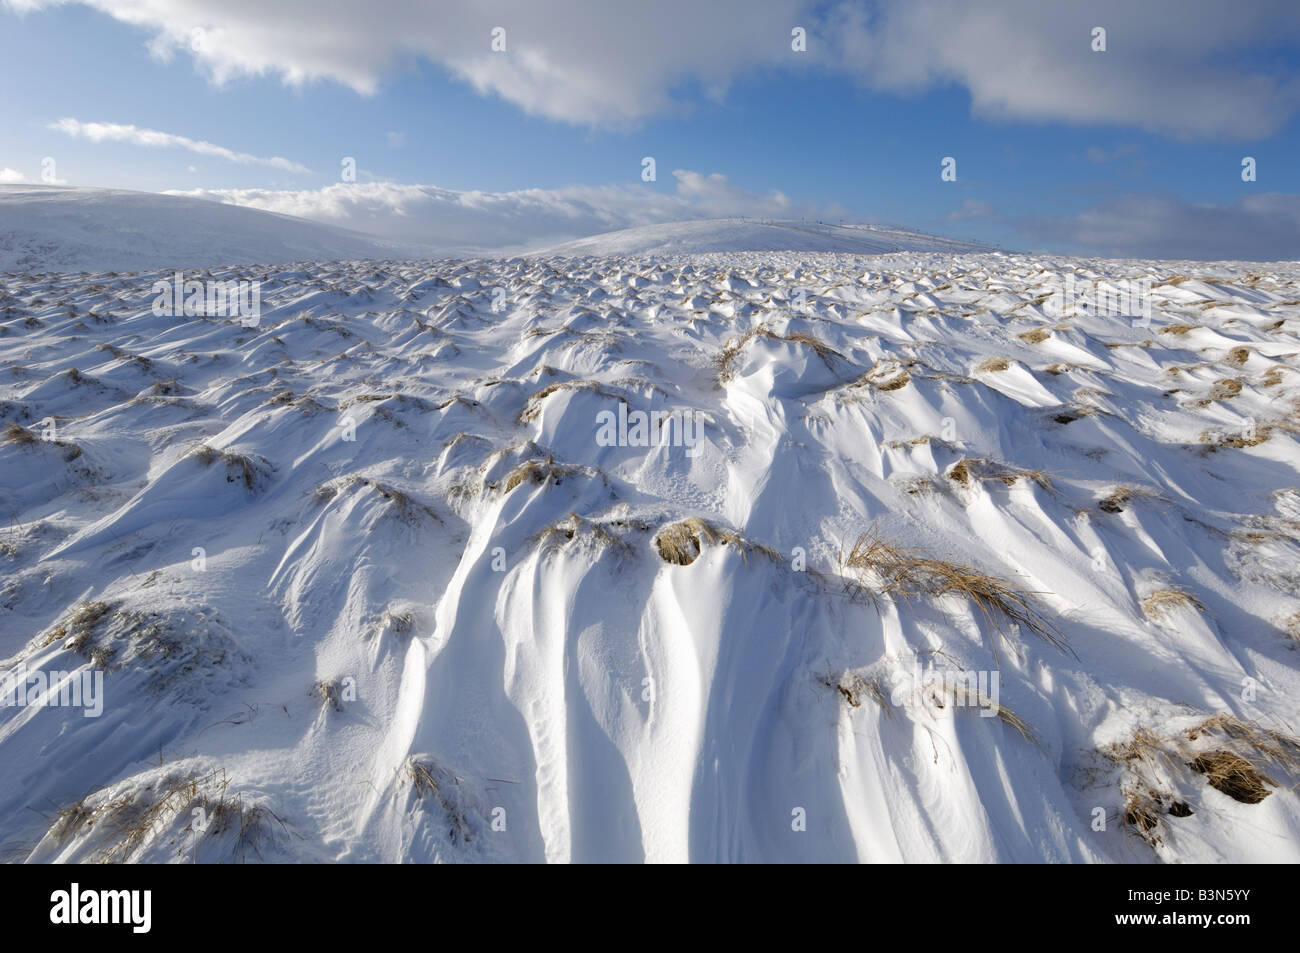 Cairngorm Mountains in winter snow, near Lecht Ski Area, Tomintoul, Highlands, Scotland - Stock Image